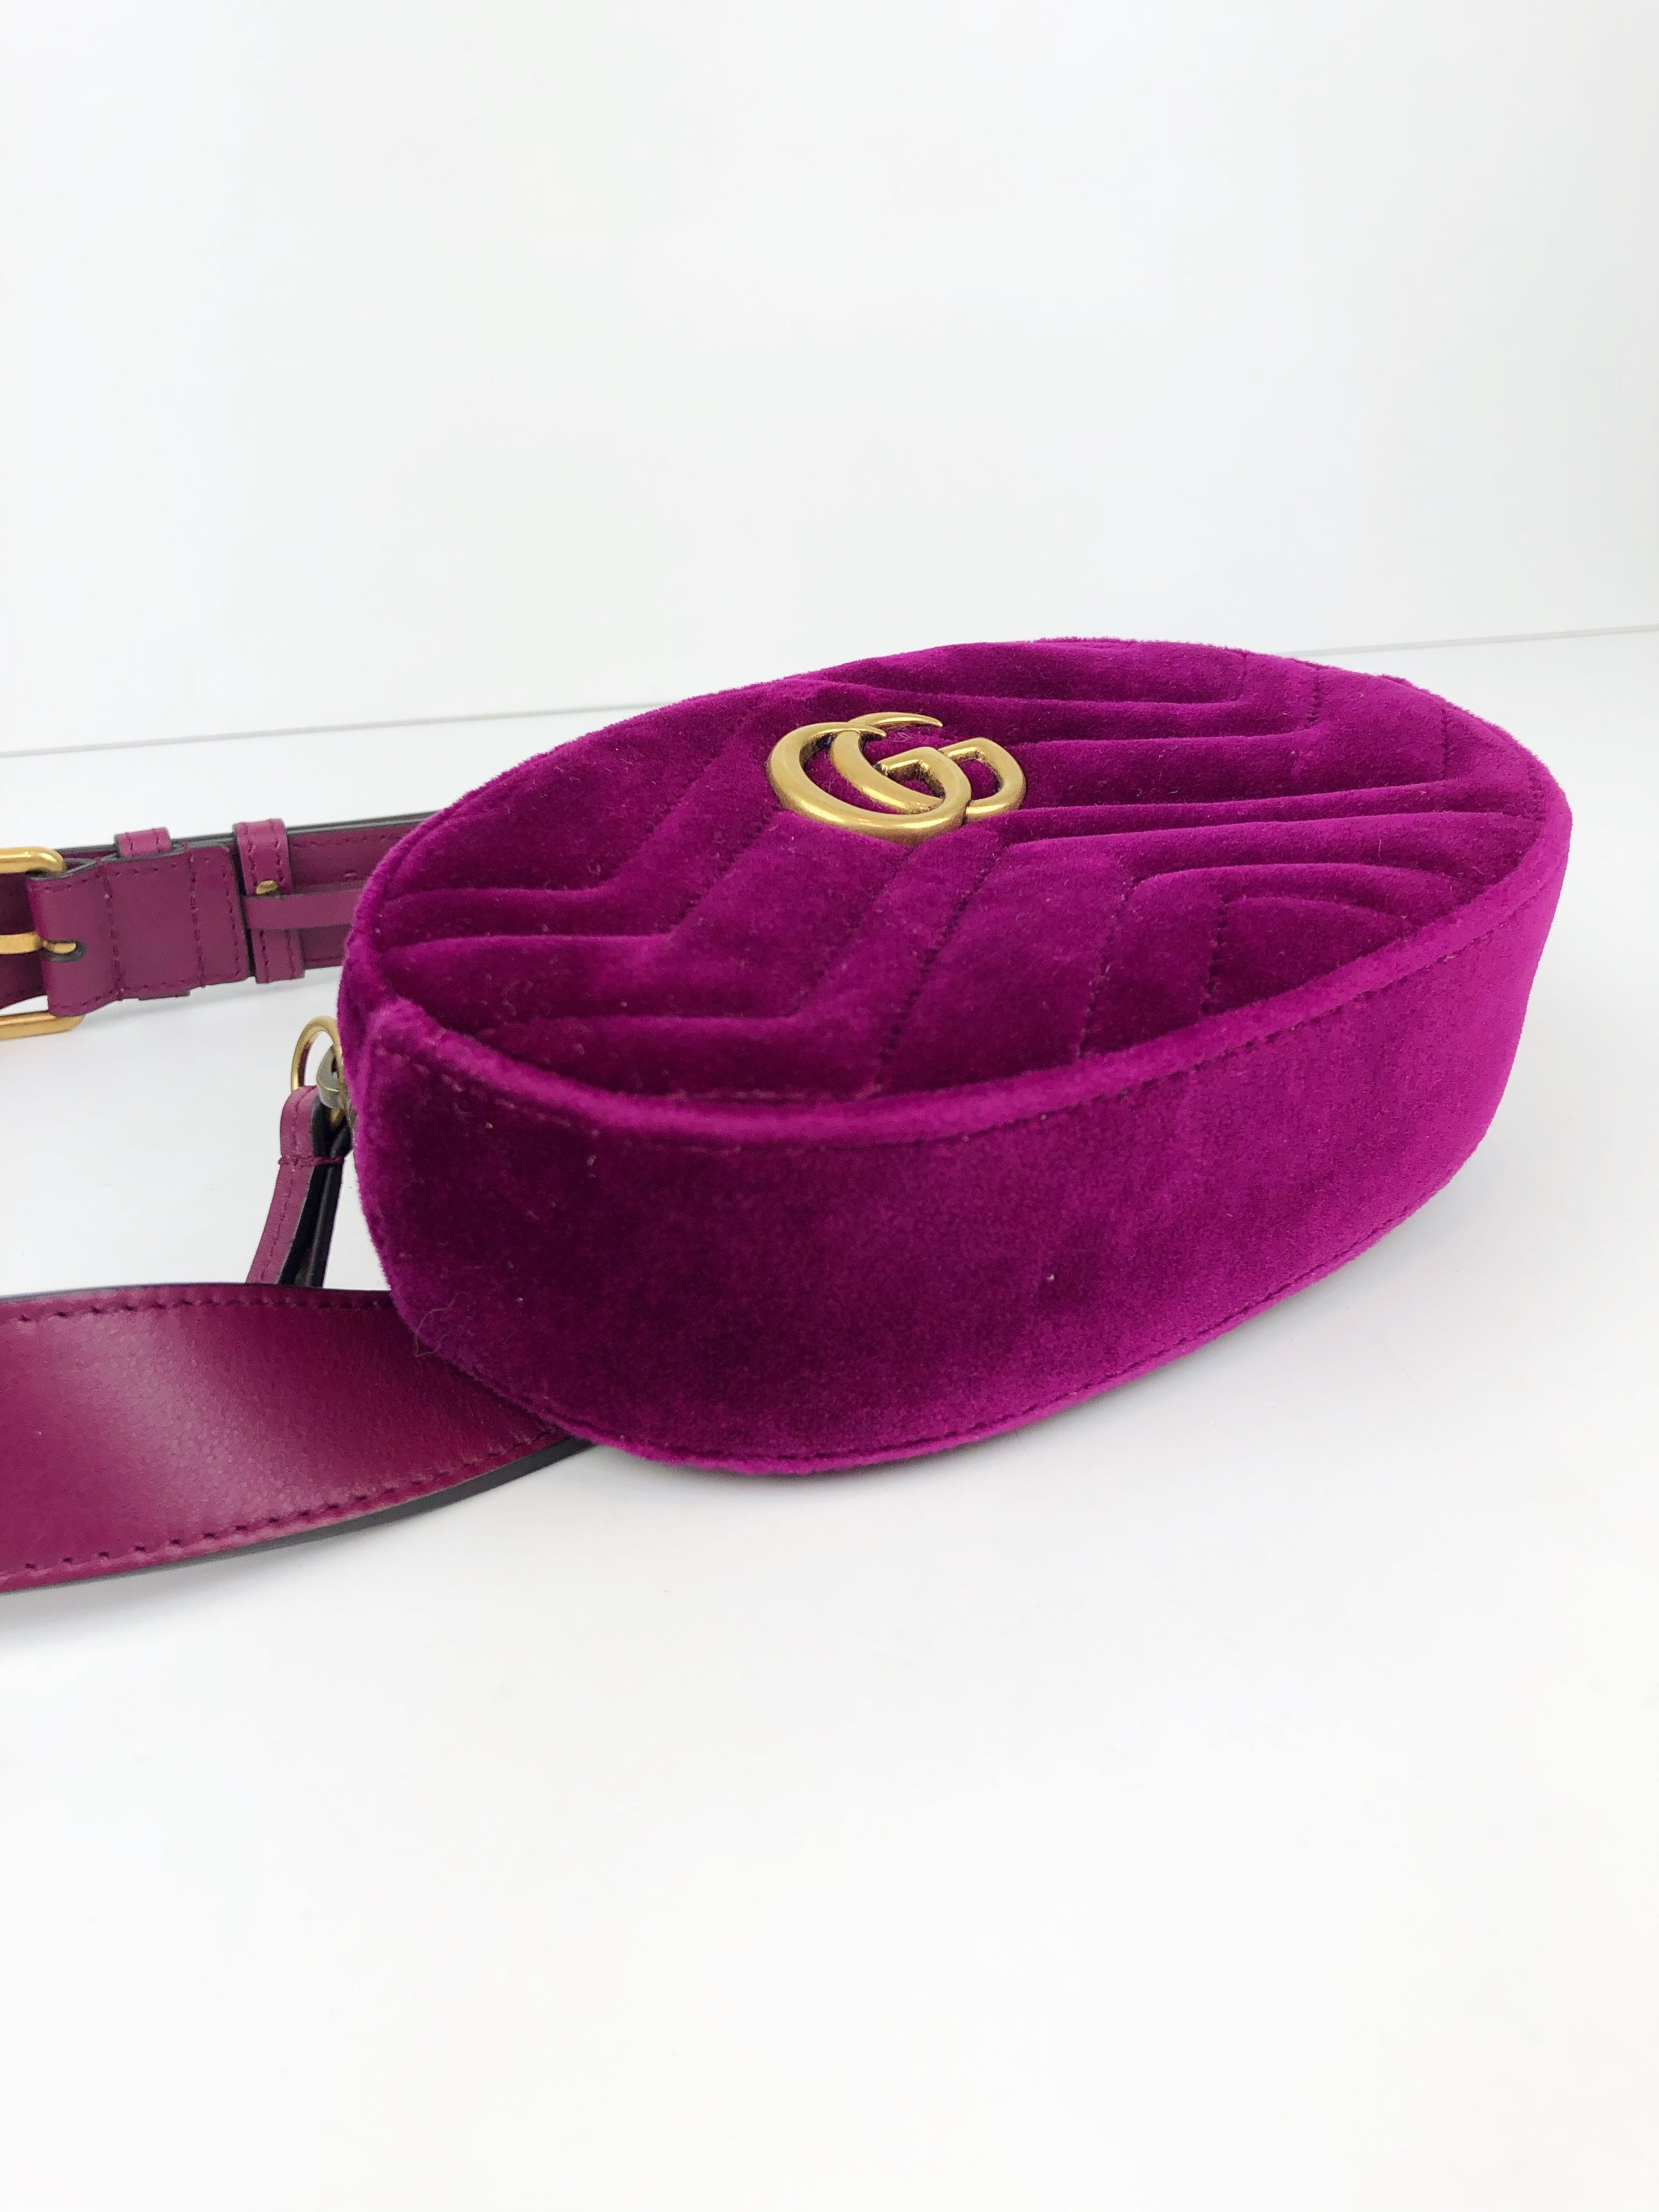 Gucci Marmont Beltbag